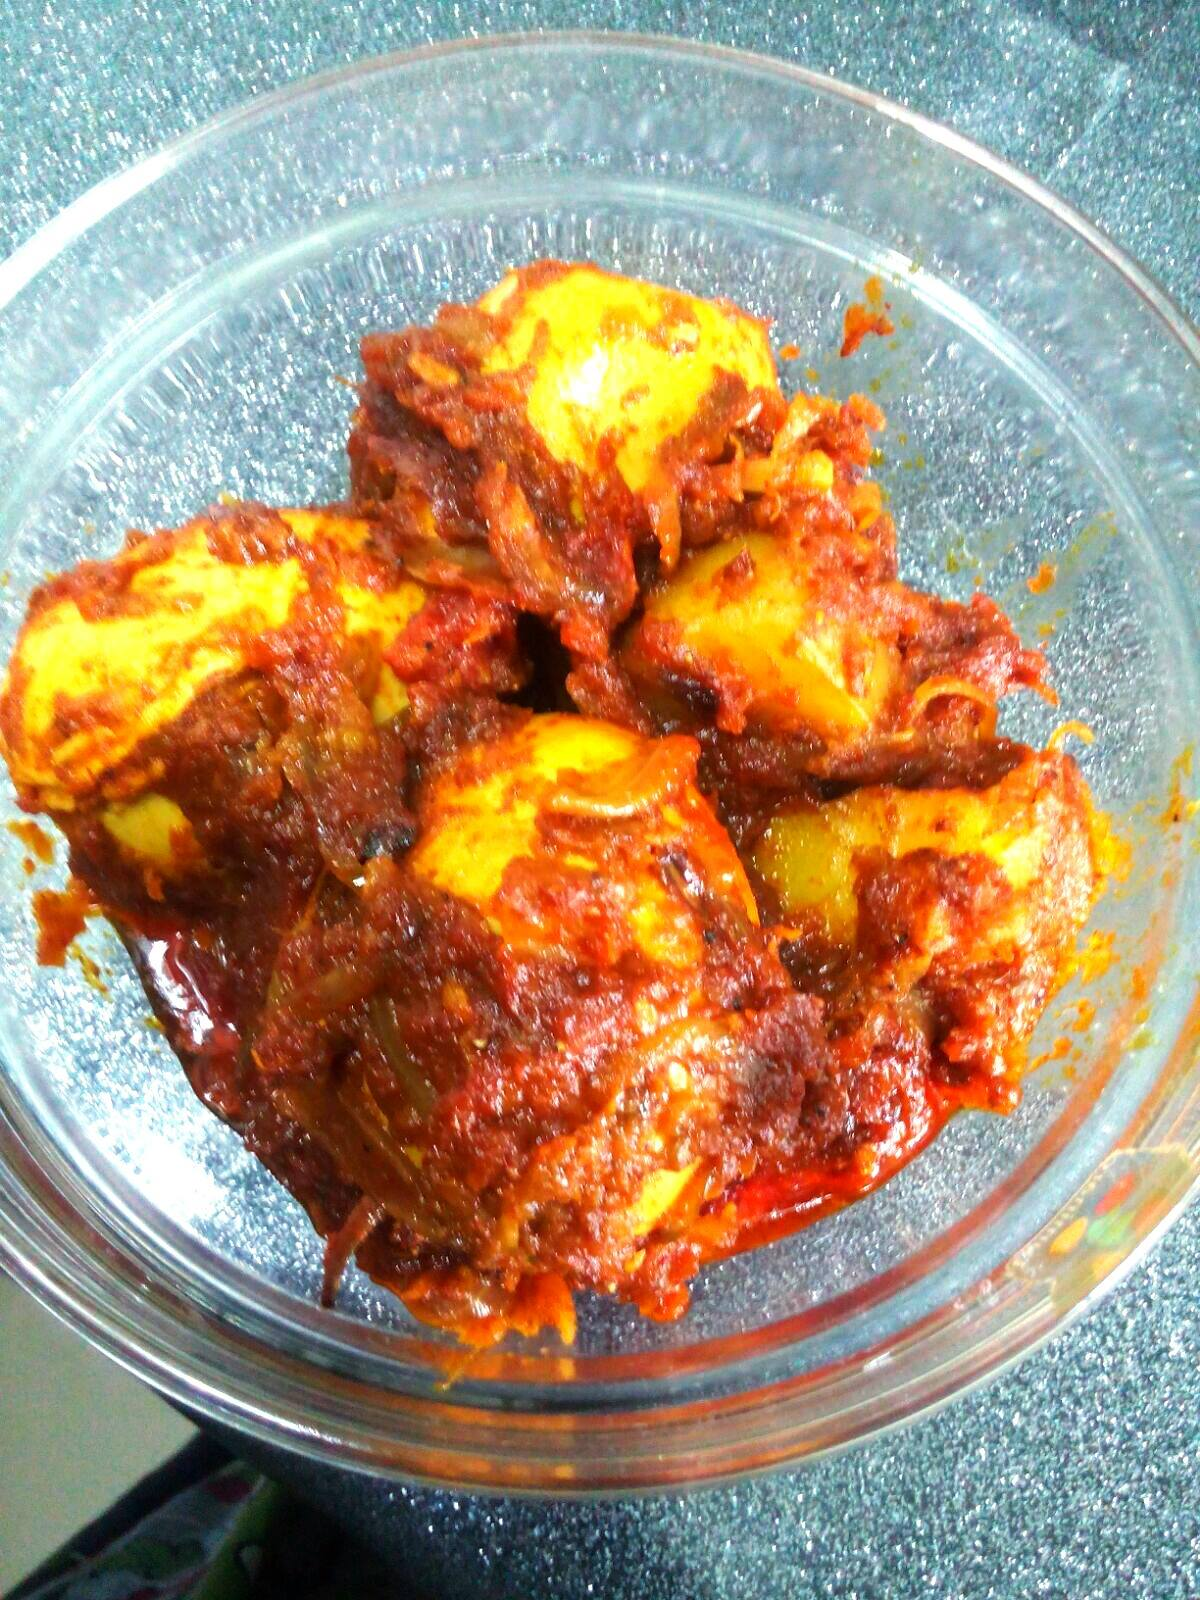 If You Are Looking For A Popular Bengali Recipe With Eggs This Is Probably The One Recipe To Start With Dim Kosha Is A Spicy Gravy Prepared With Either